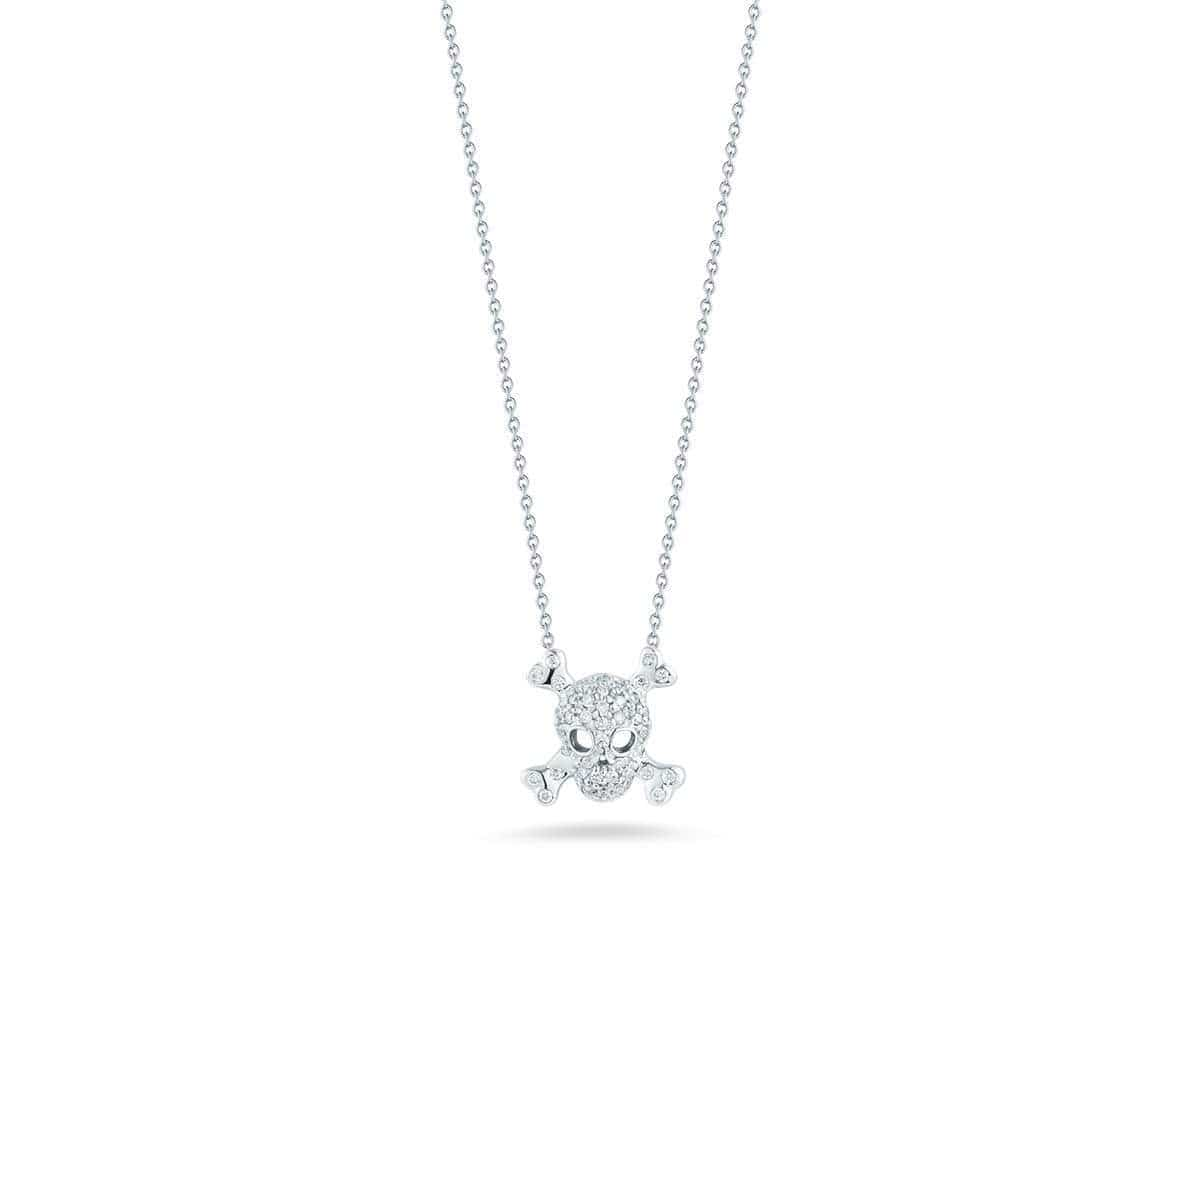 18k White Gold & Diamond Skull Necklace - 001403AYCHX0-Roberto Coin-Renee Taylor Gallery